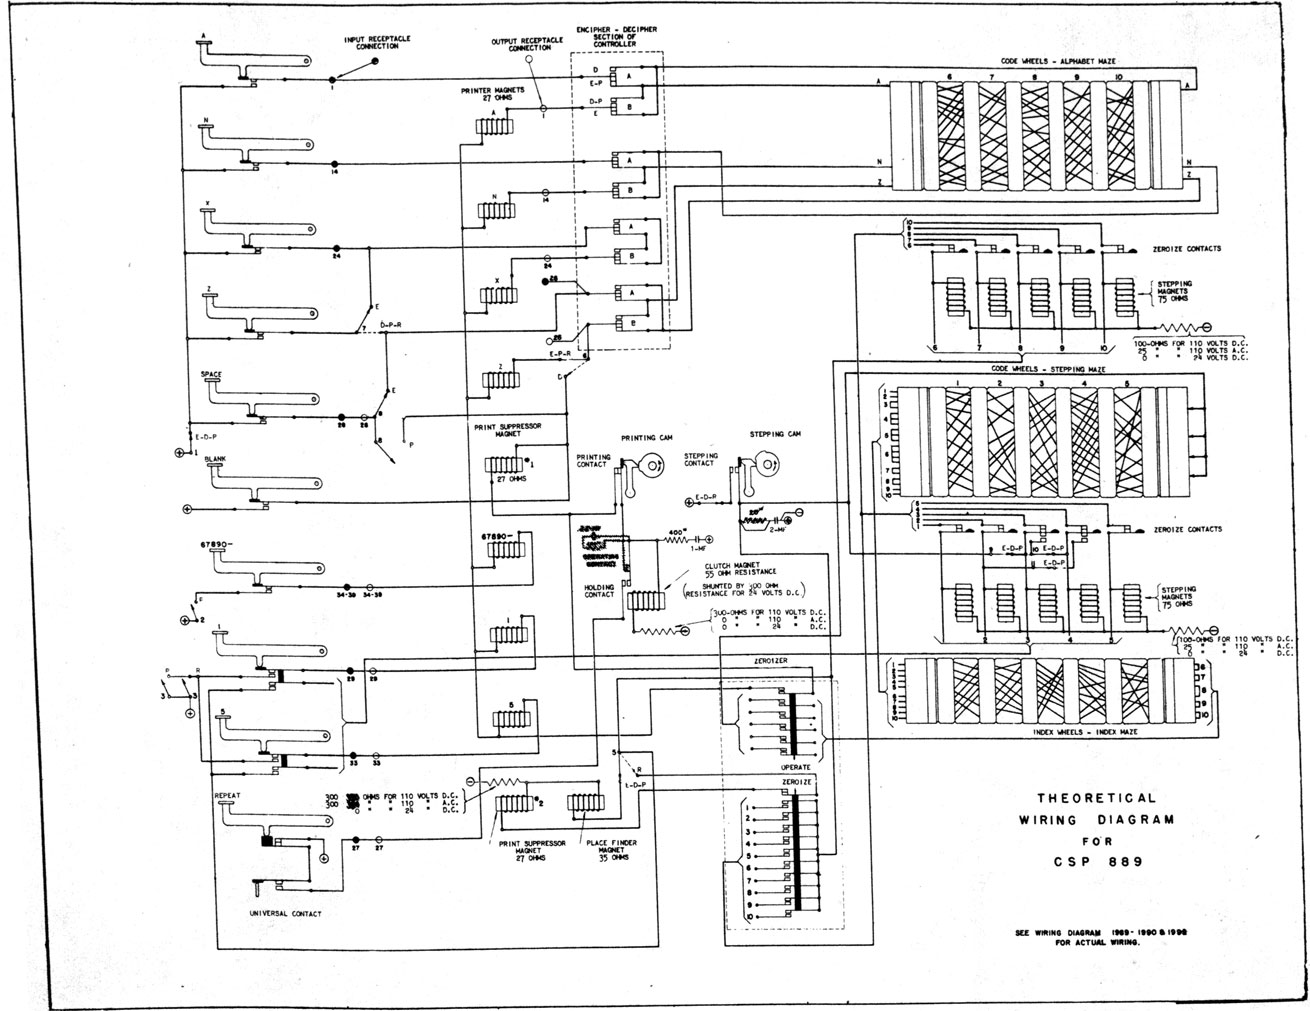 Ecm Mark 2 And Ccm 1 Part 5 Alcor Alternator Wiring Diagram Theoretical For Csp 889